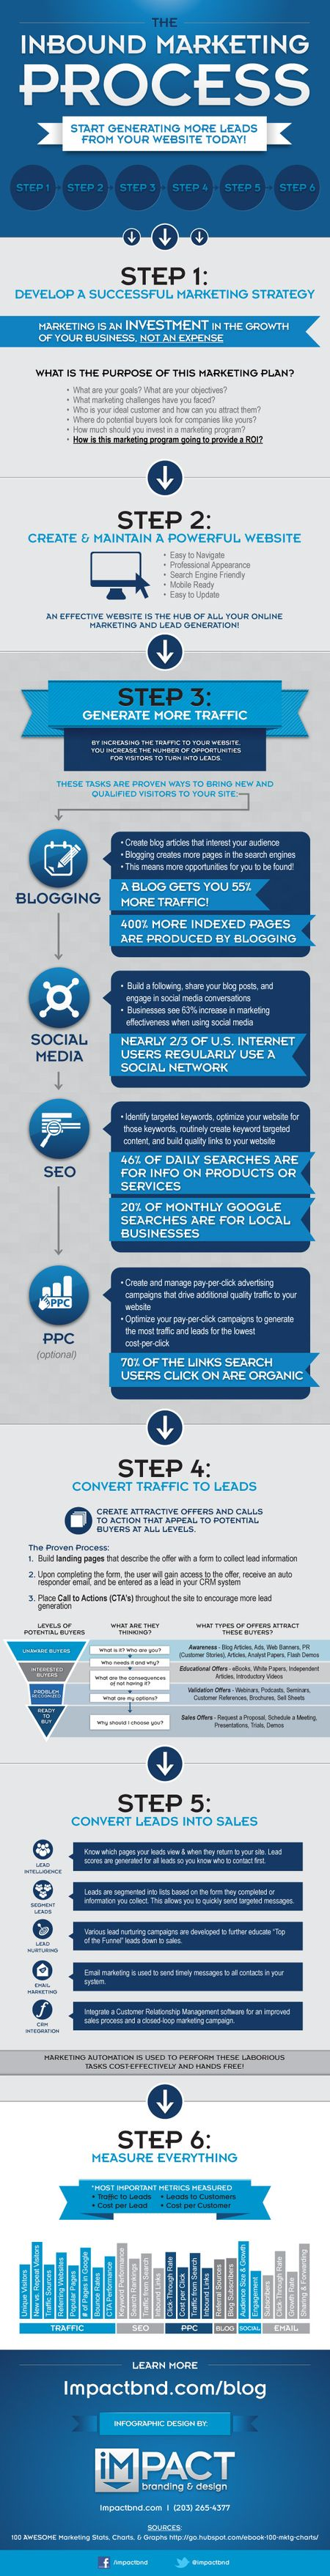 Designing a Great Inbound Marketing Campaign [INFOGRAPHIC